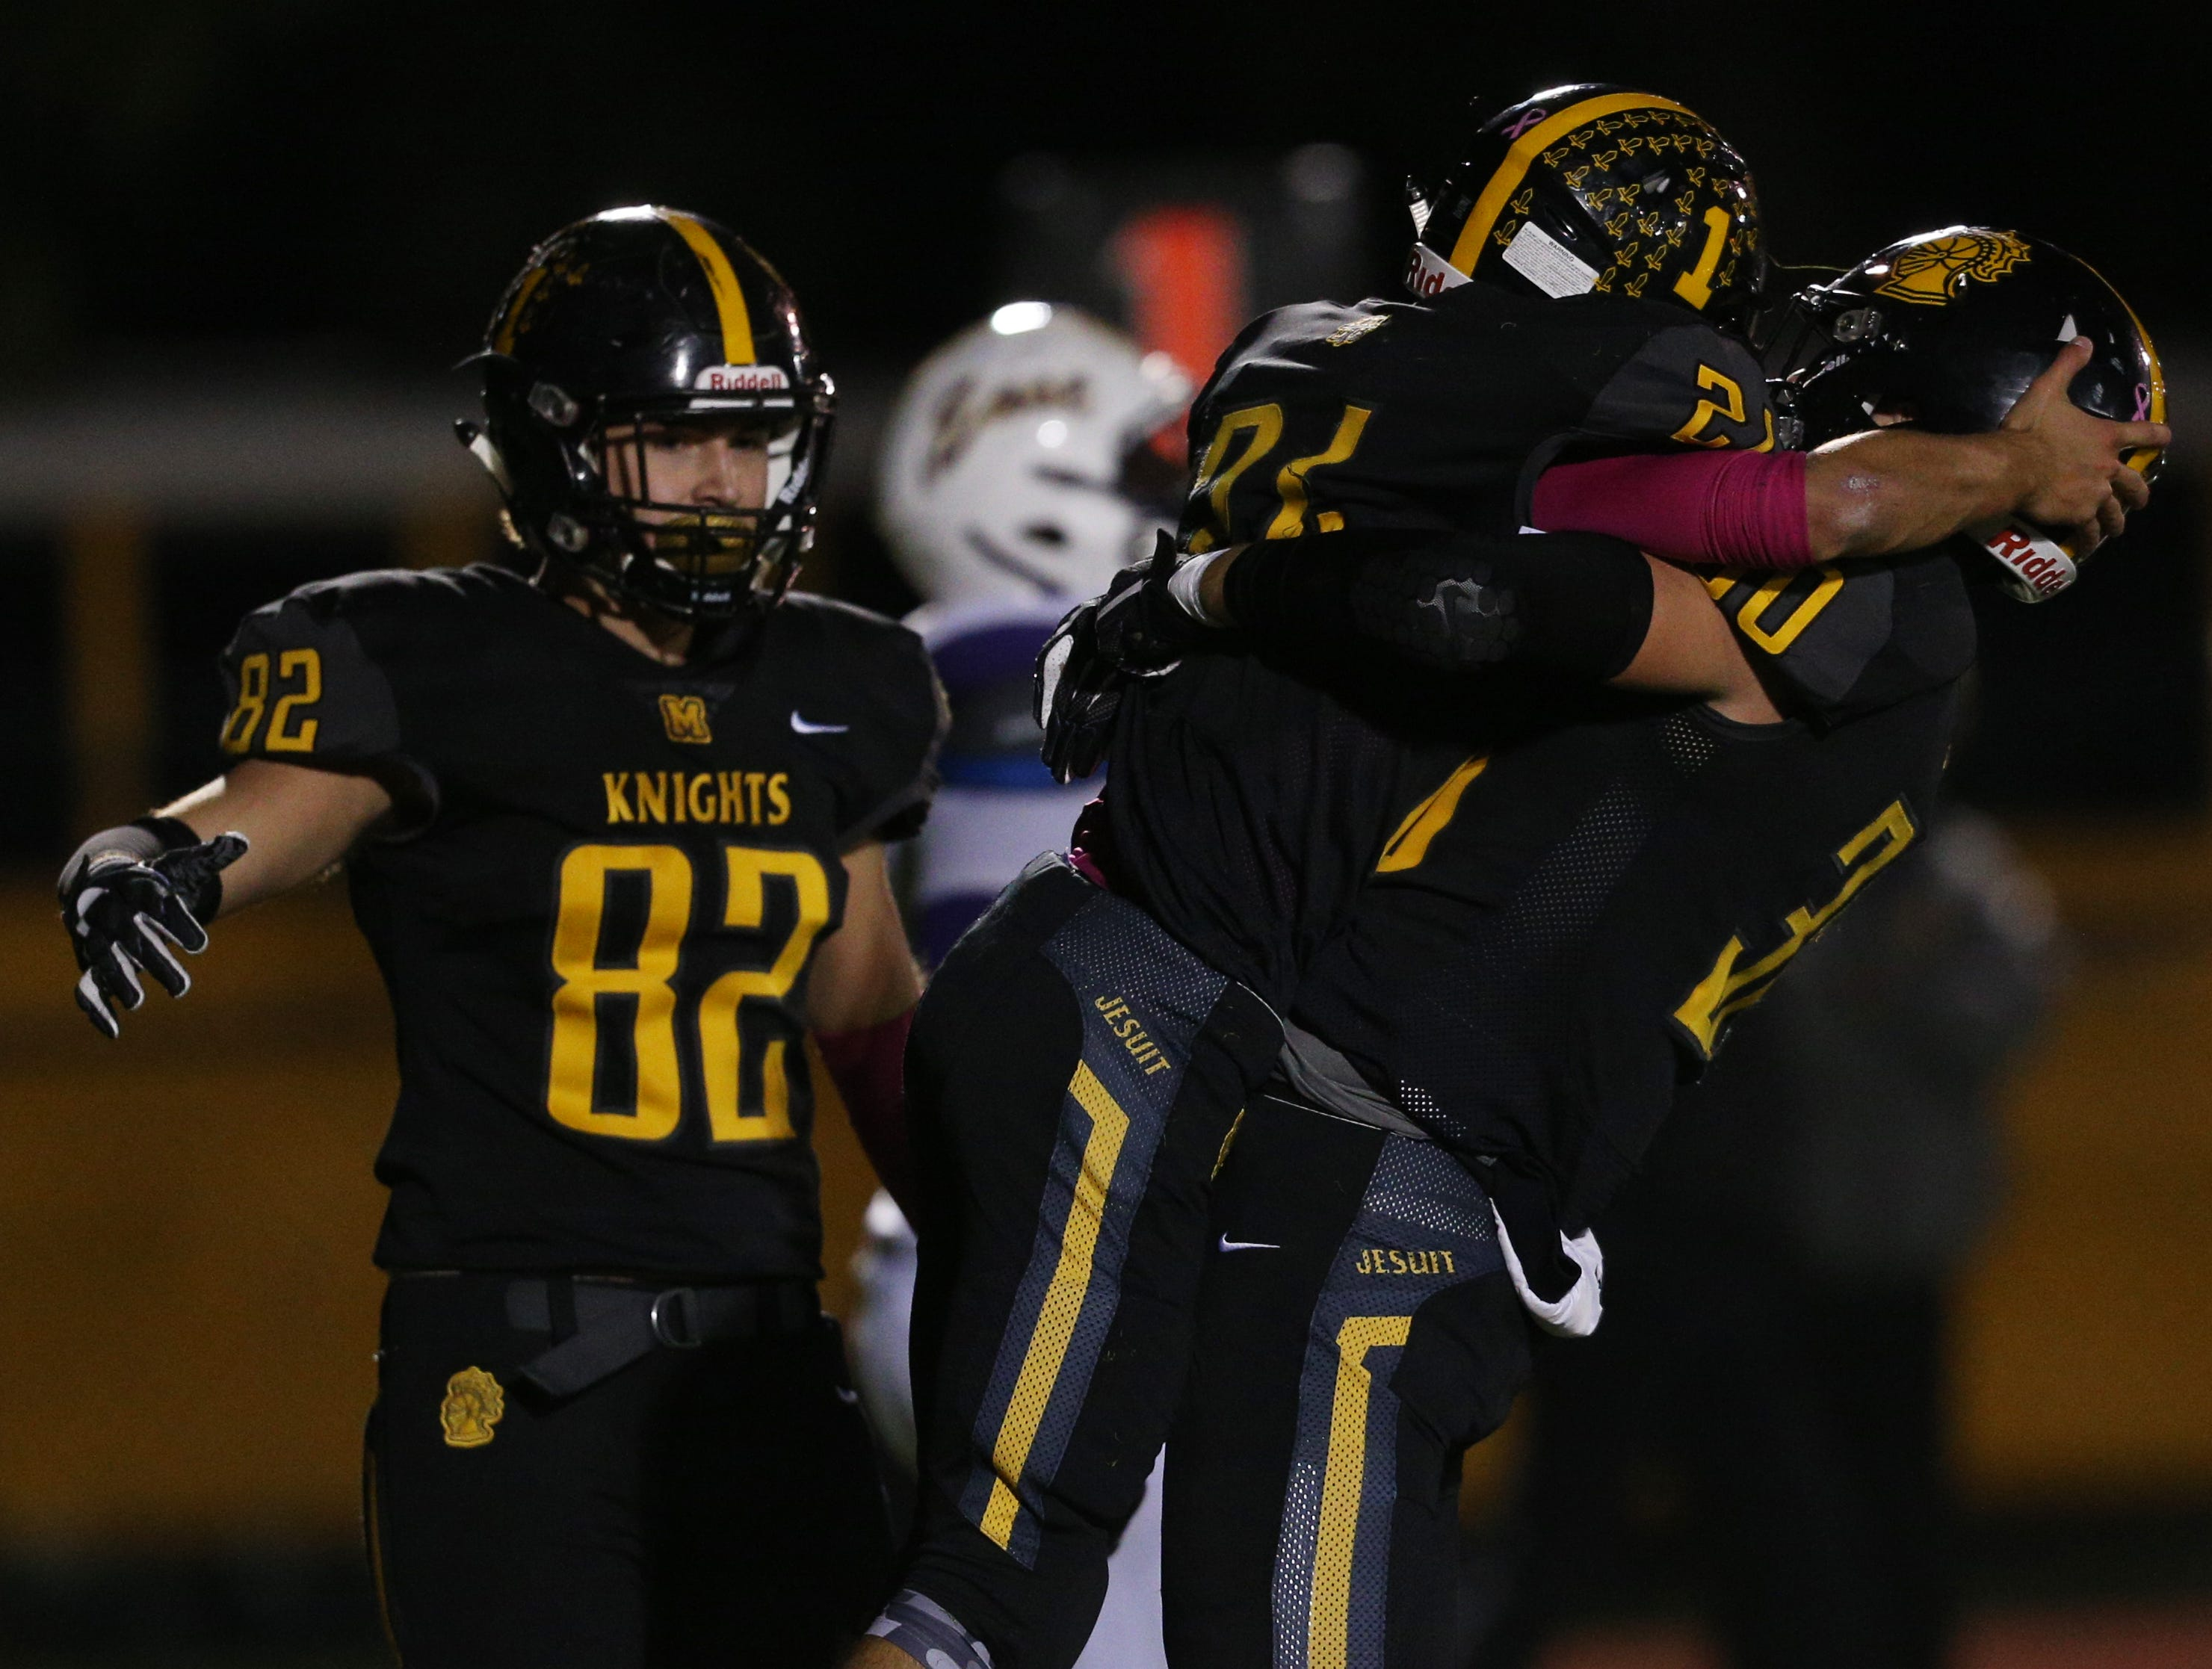 McQuaid's Mark Passero gets a hug after his touchdown against East.